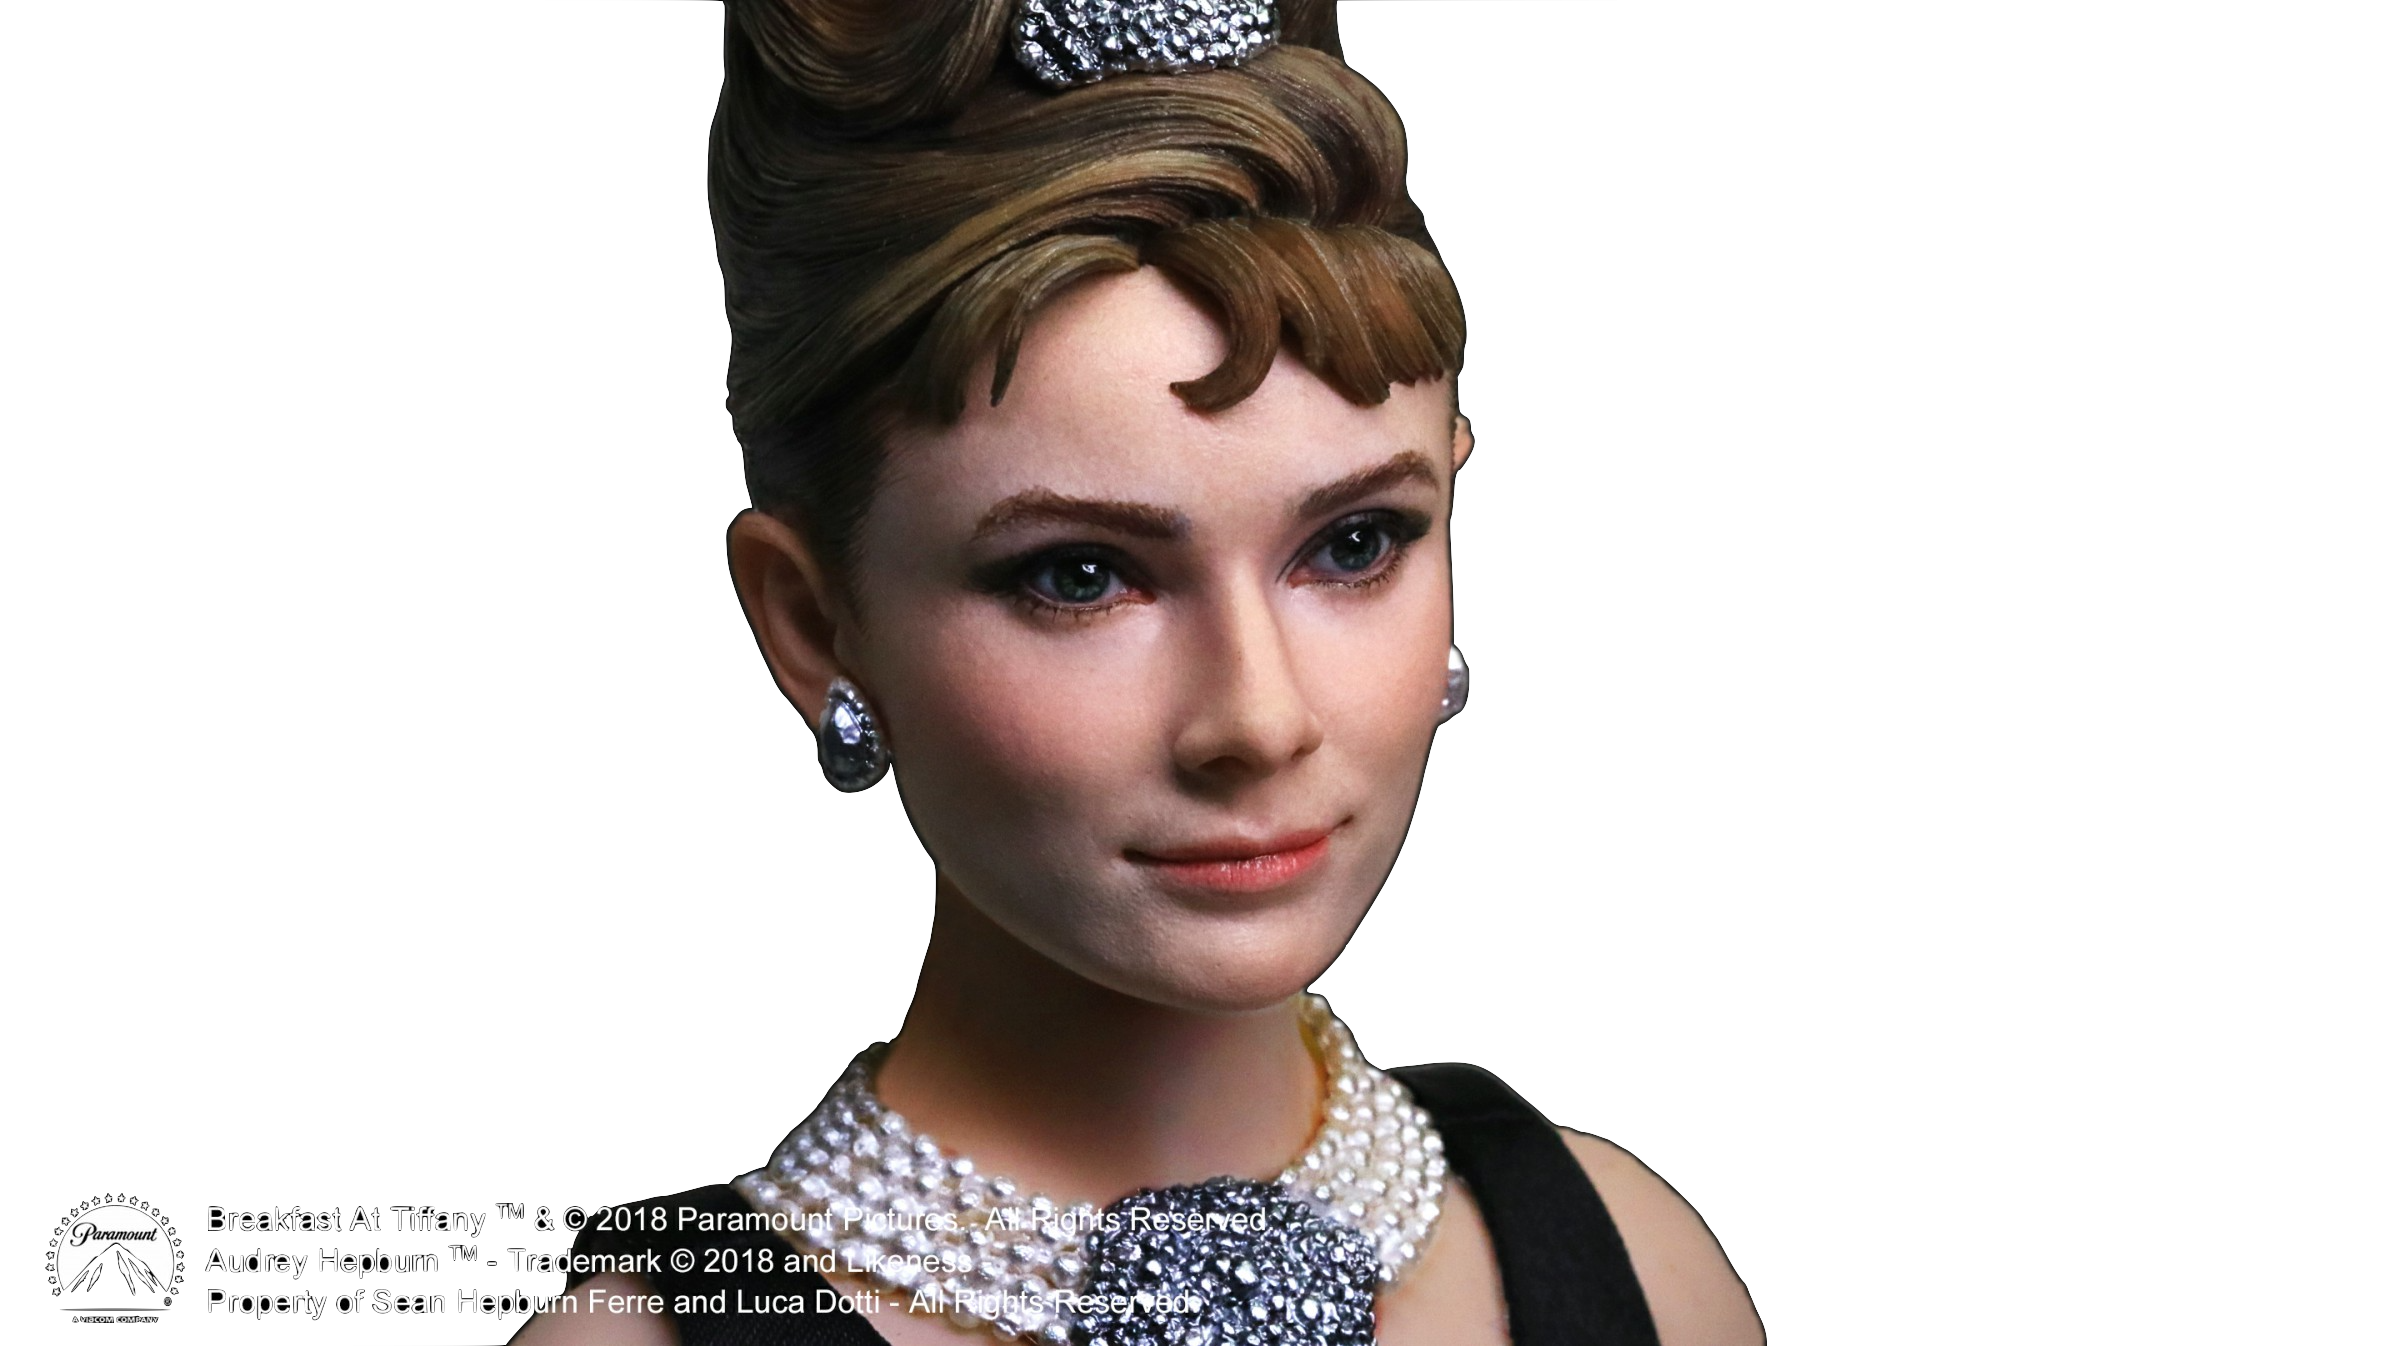 star-ace-breakfast-at-tiffanys-holly-golightly-audrey-hepburn-deluxe-figure-toyslife